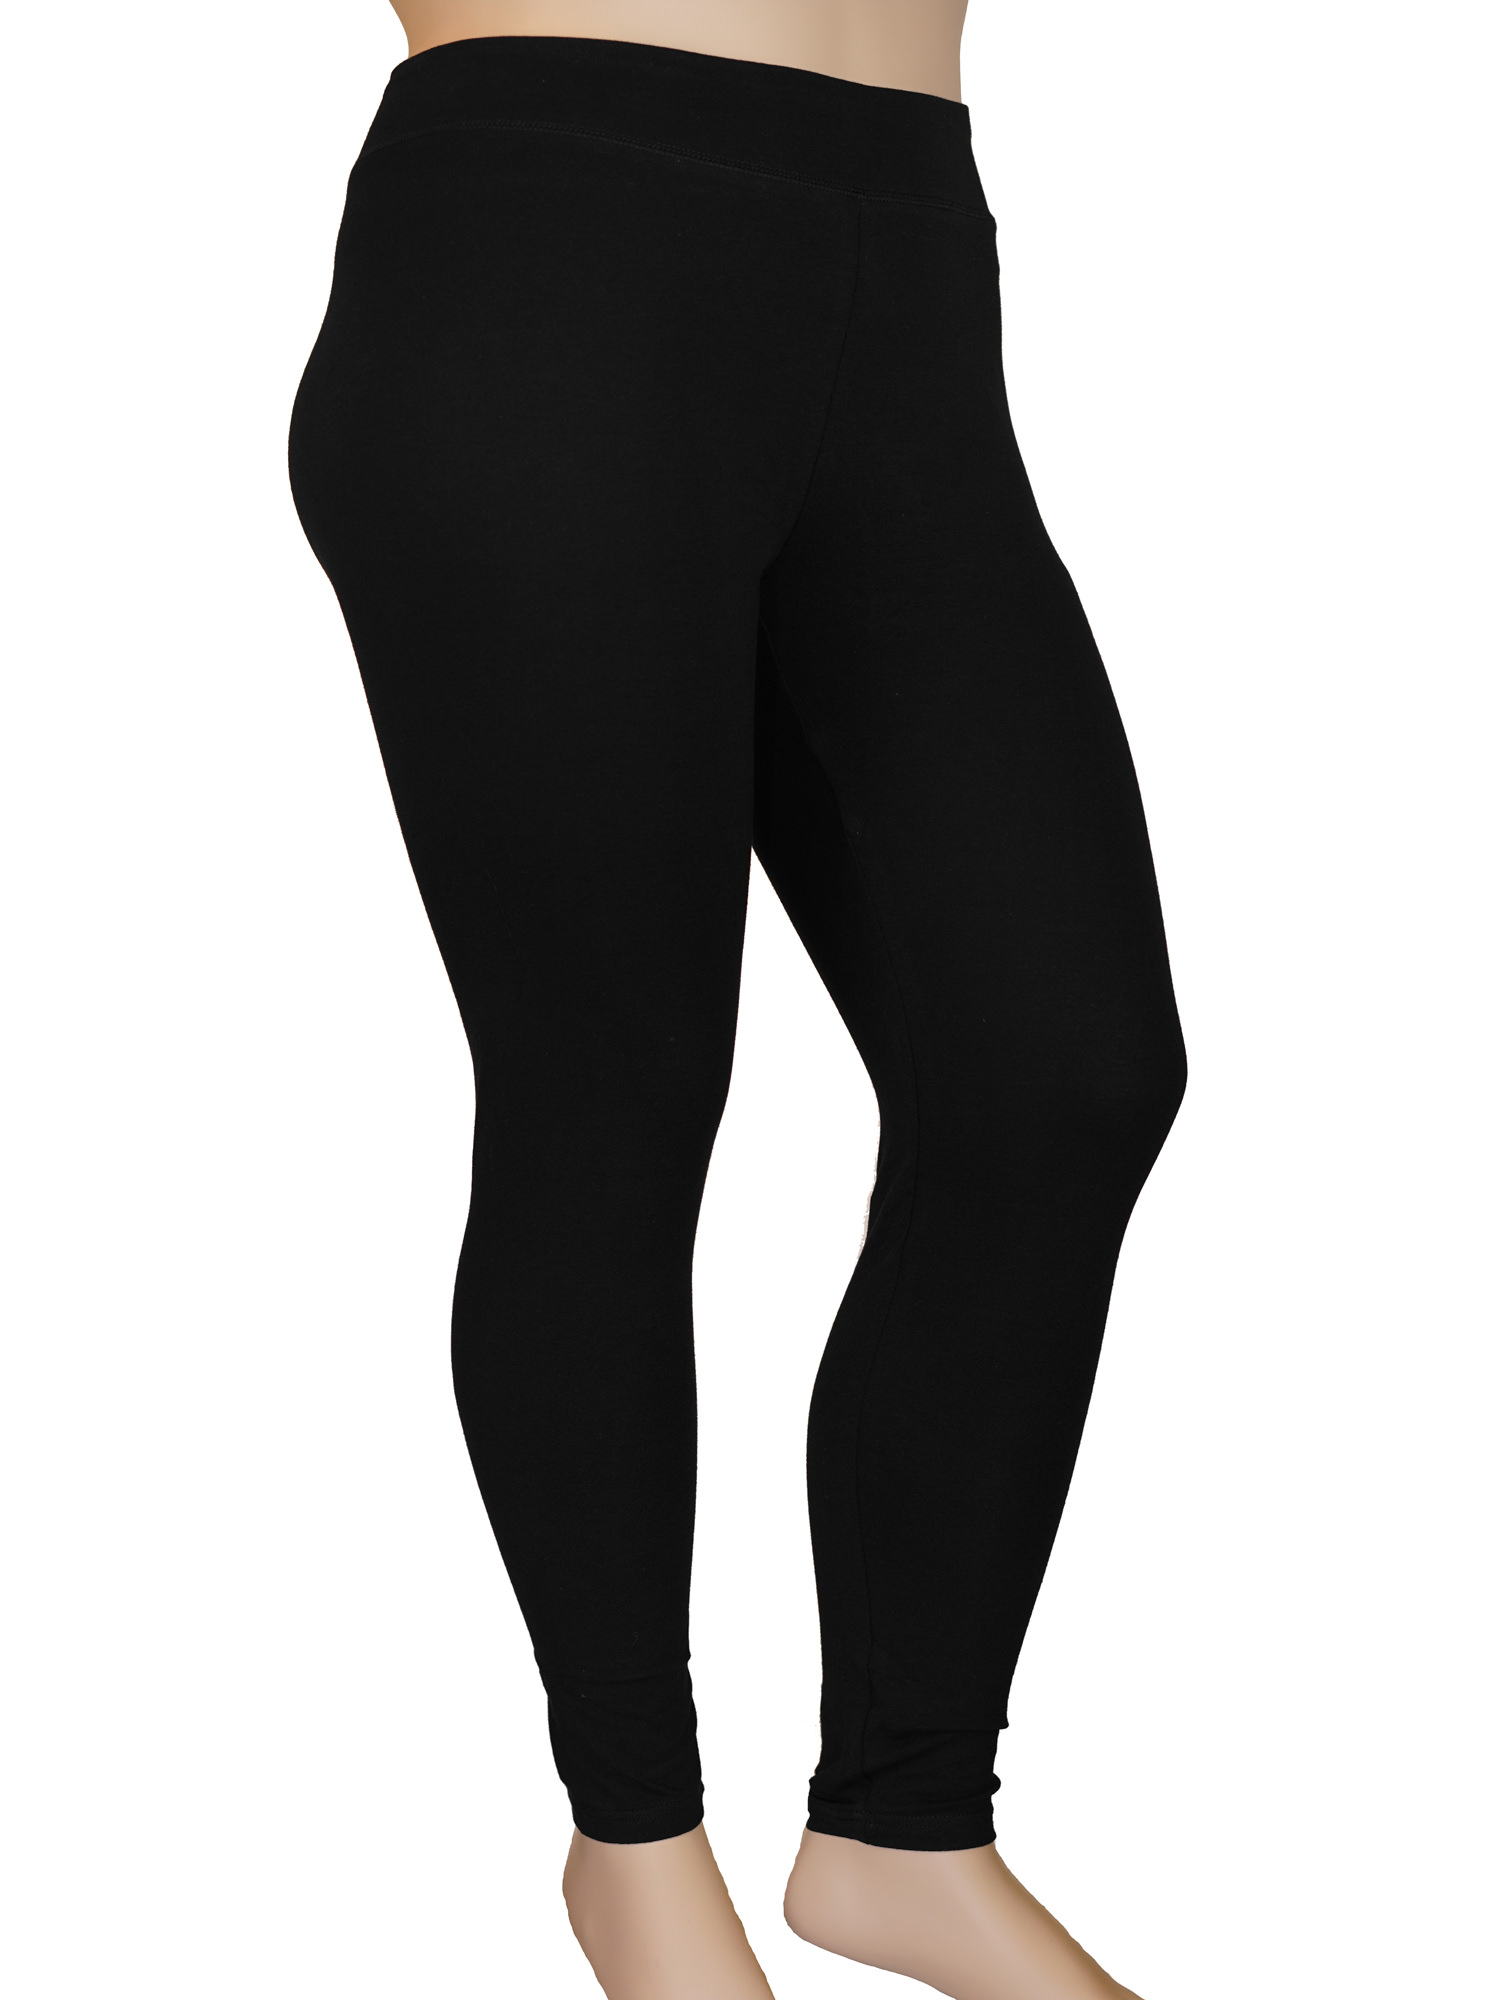 Stylzoo Plus Size Women's Ankle High Comfort Stretch Leggings Yoga Stretch Pants Black